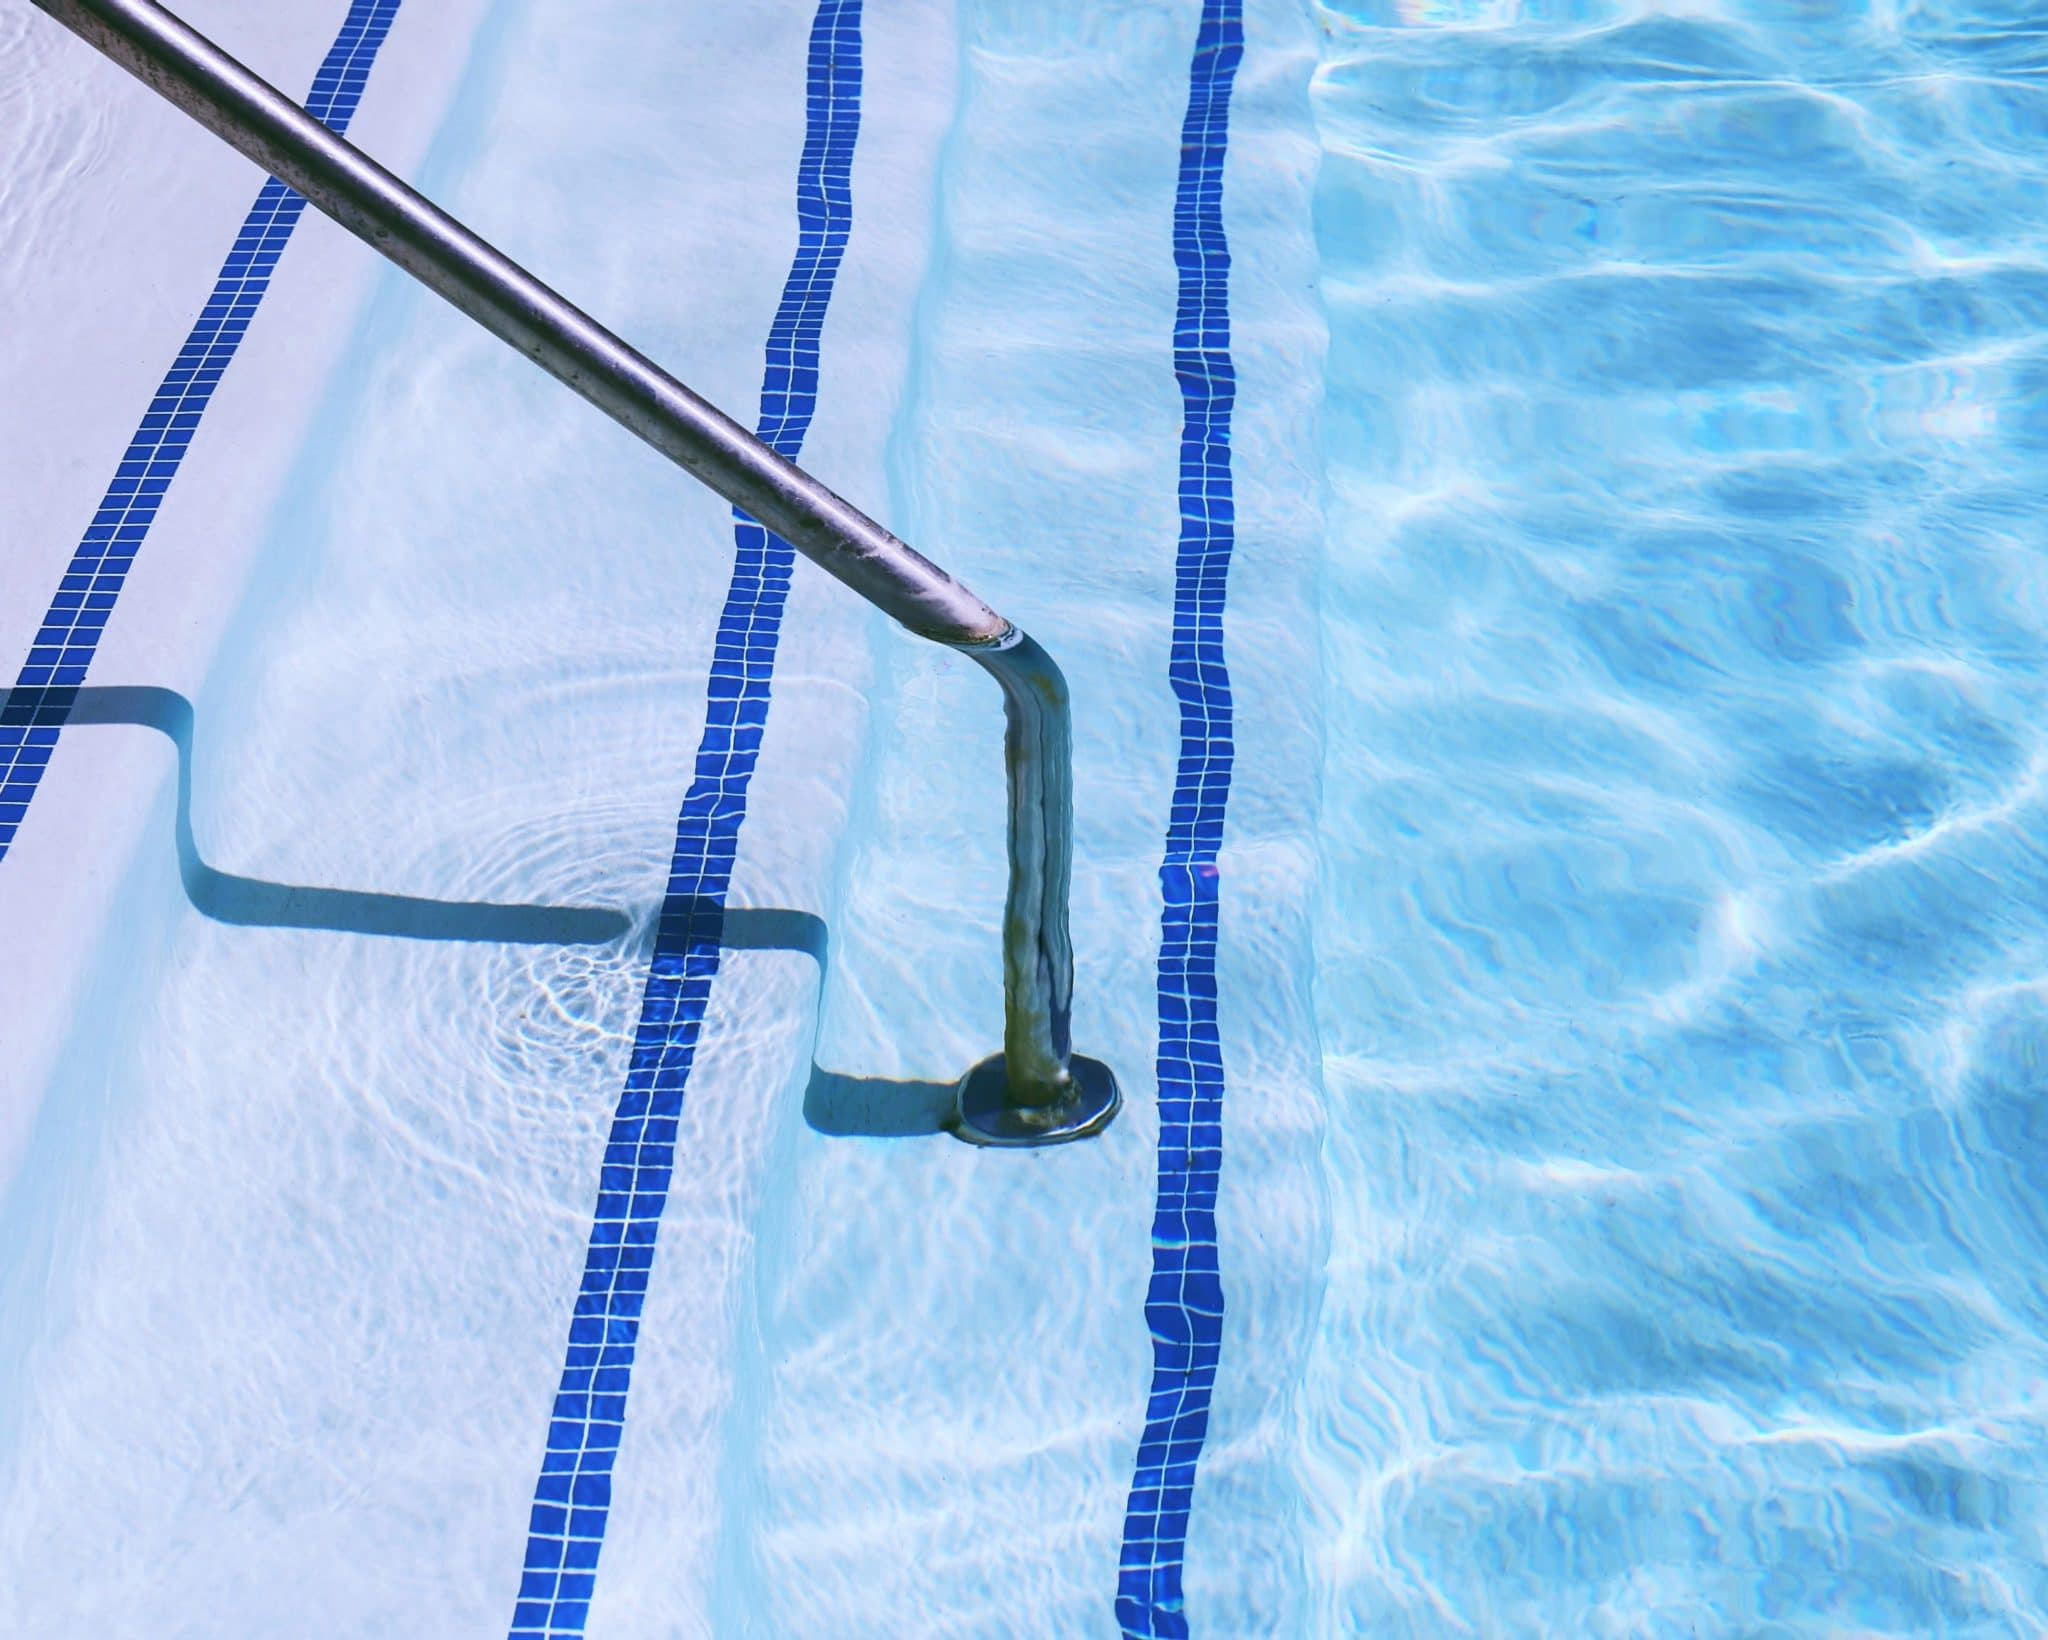 pool steps and railing - pool inspections